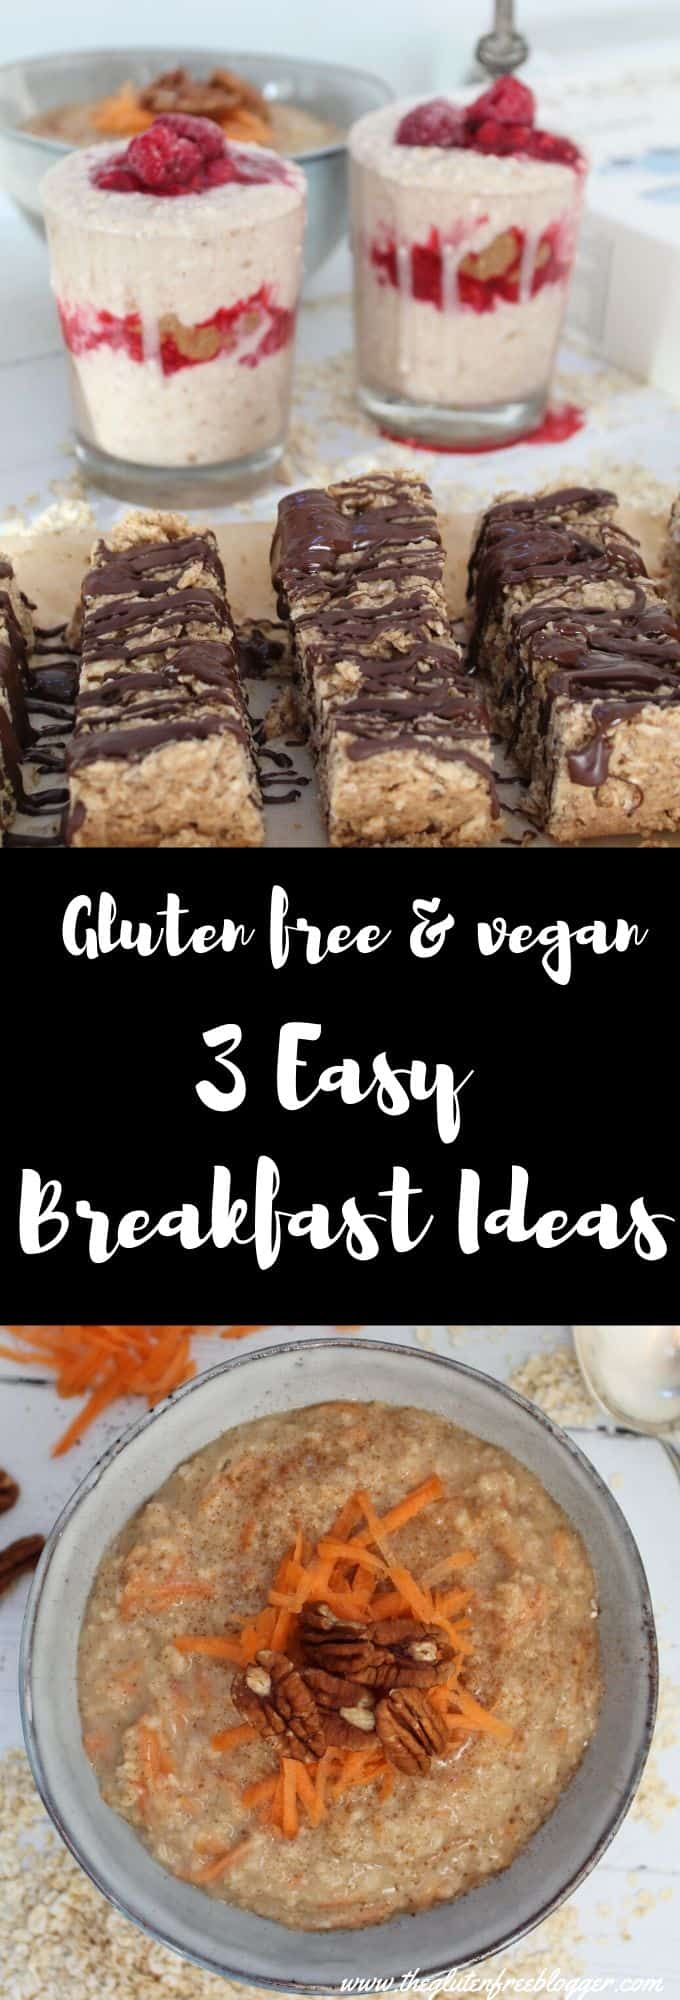 3 easy breakfast ideas recipes gluten free breakfast ideas coeliac dairy free